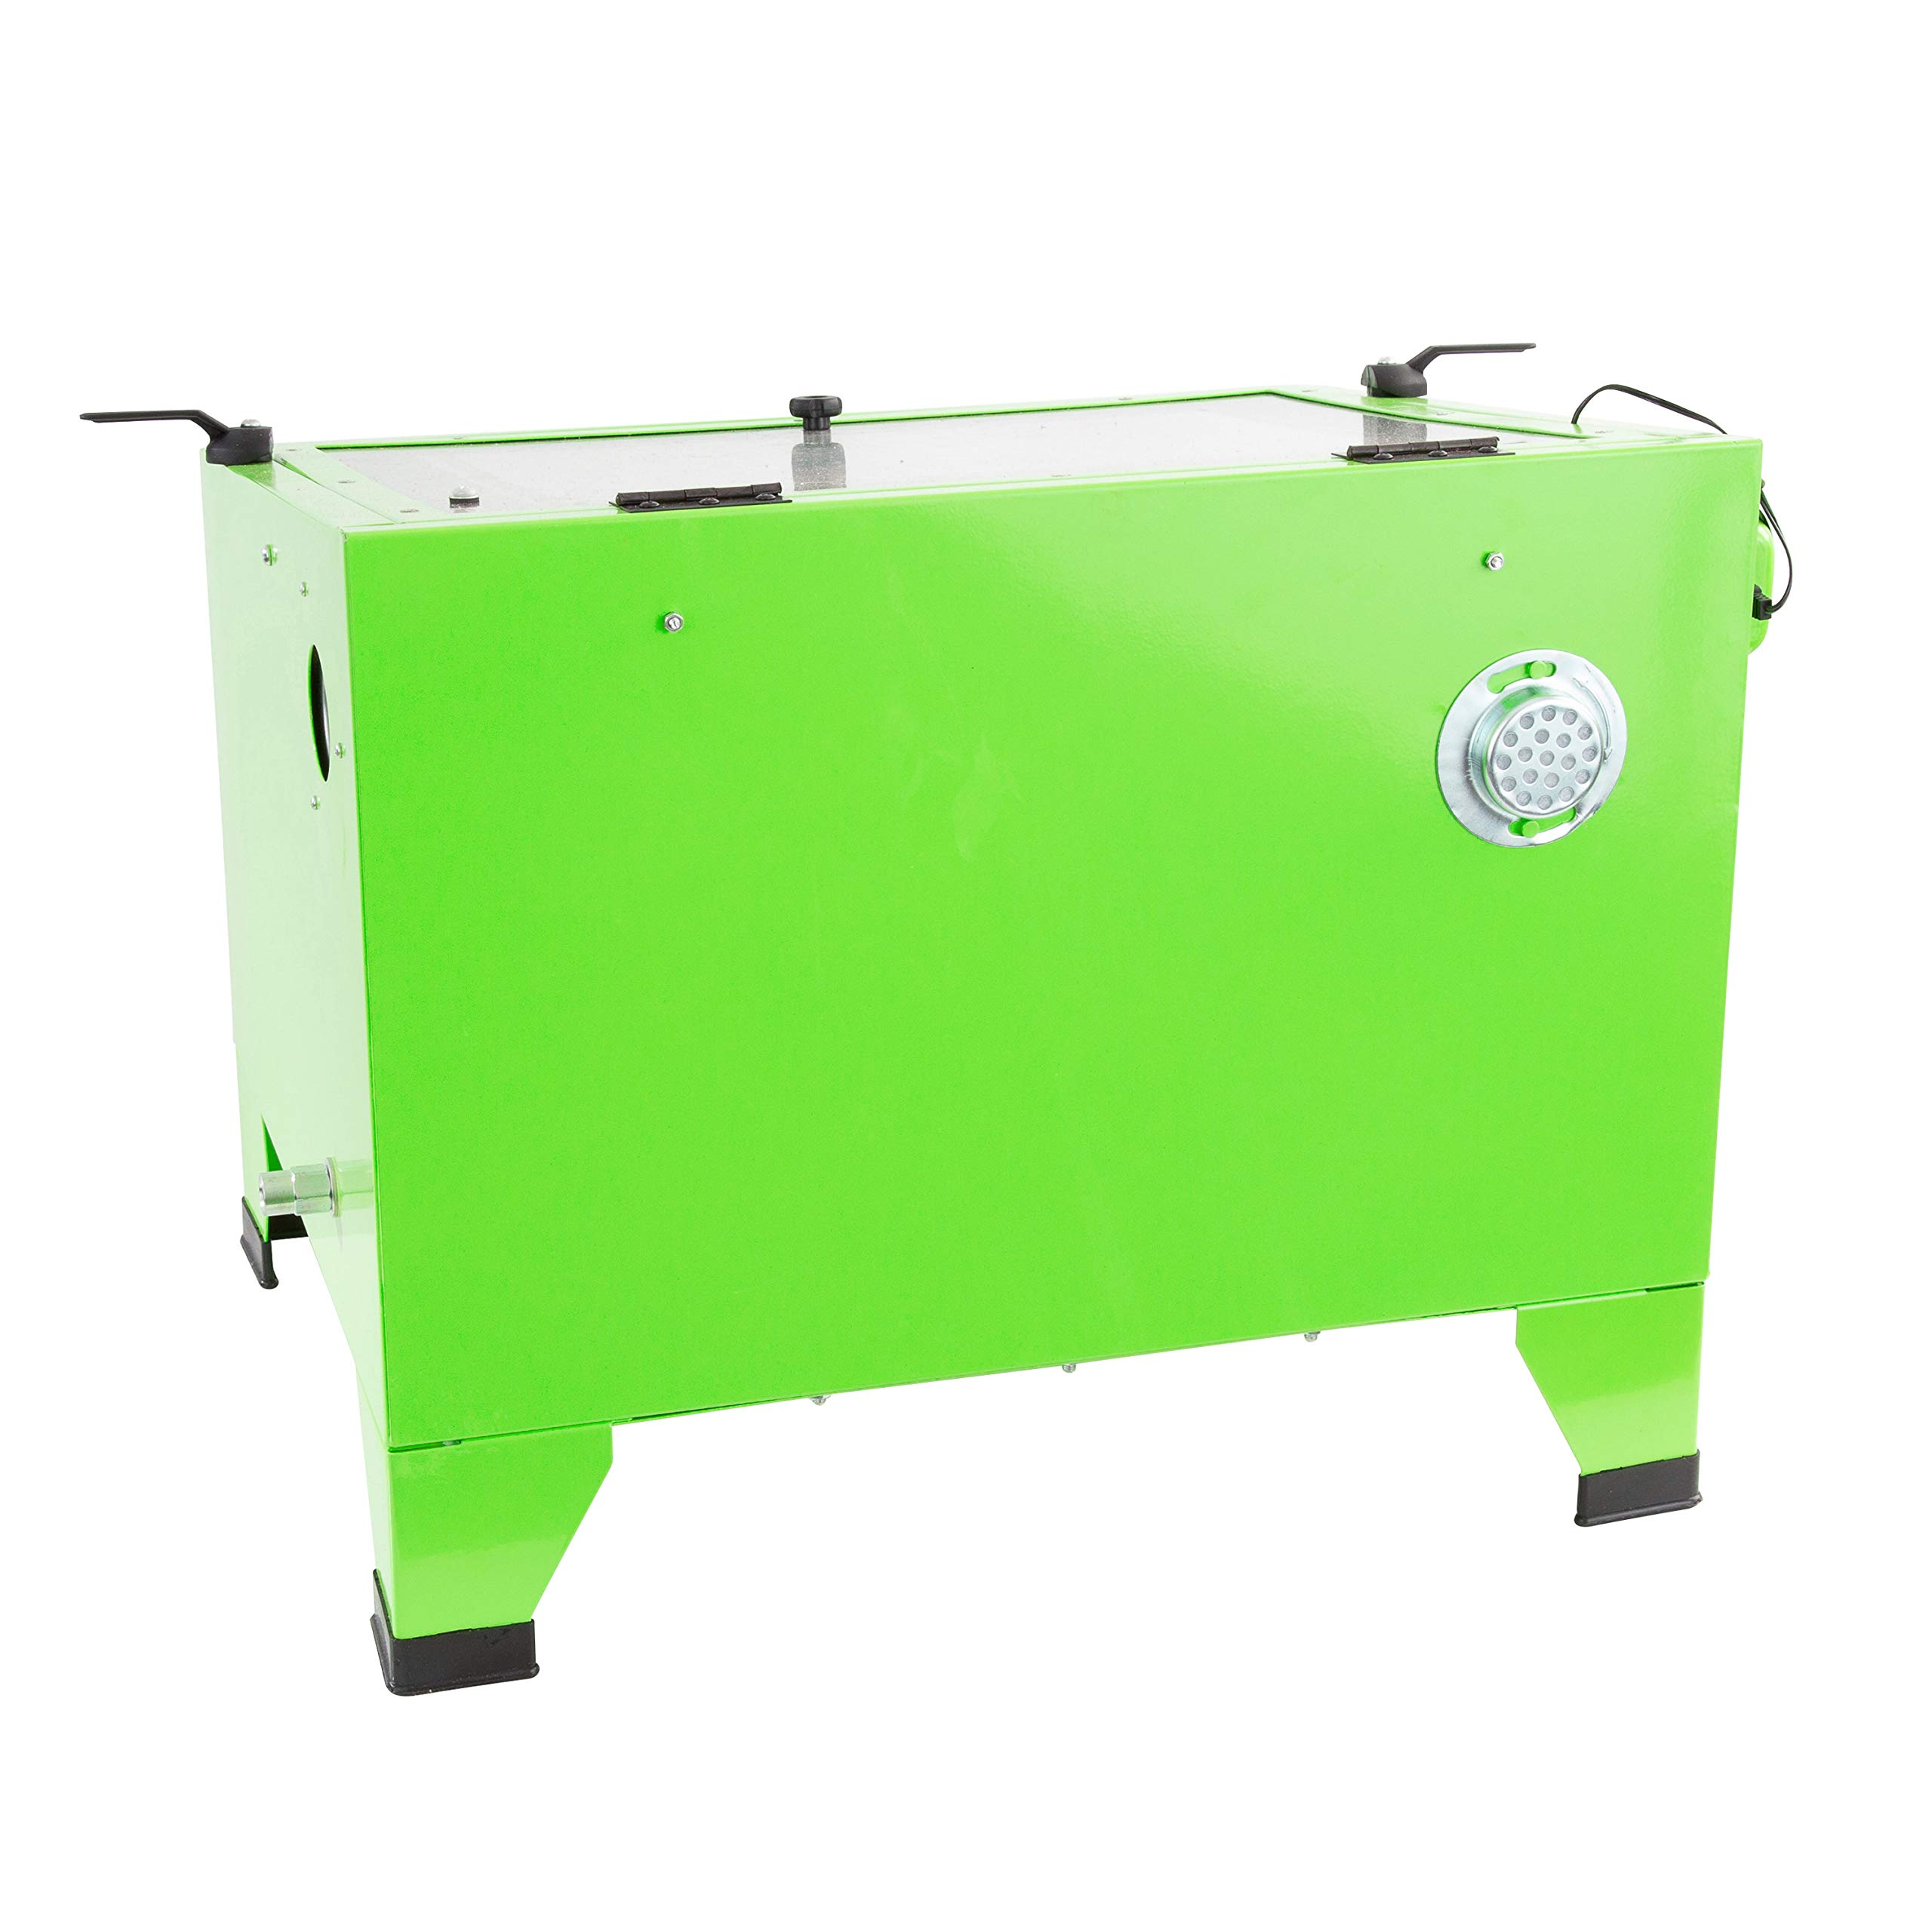 OEMTOOLS 24815 Bench Top Abrasive Blast Cabinet by OEMTOOLS (Image #7)